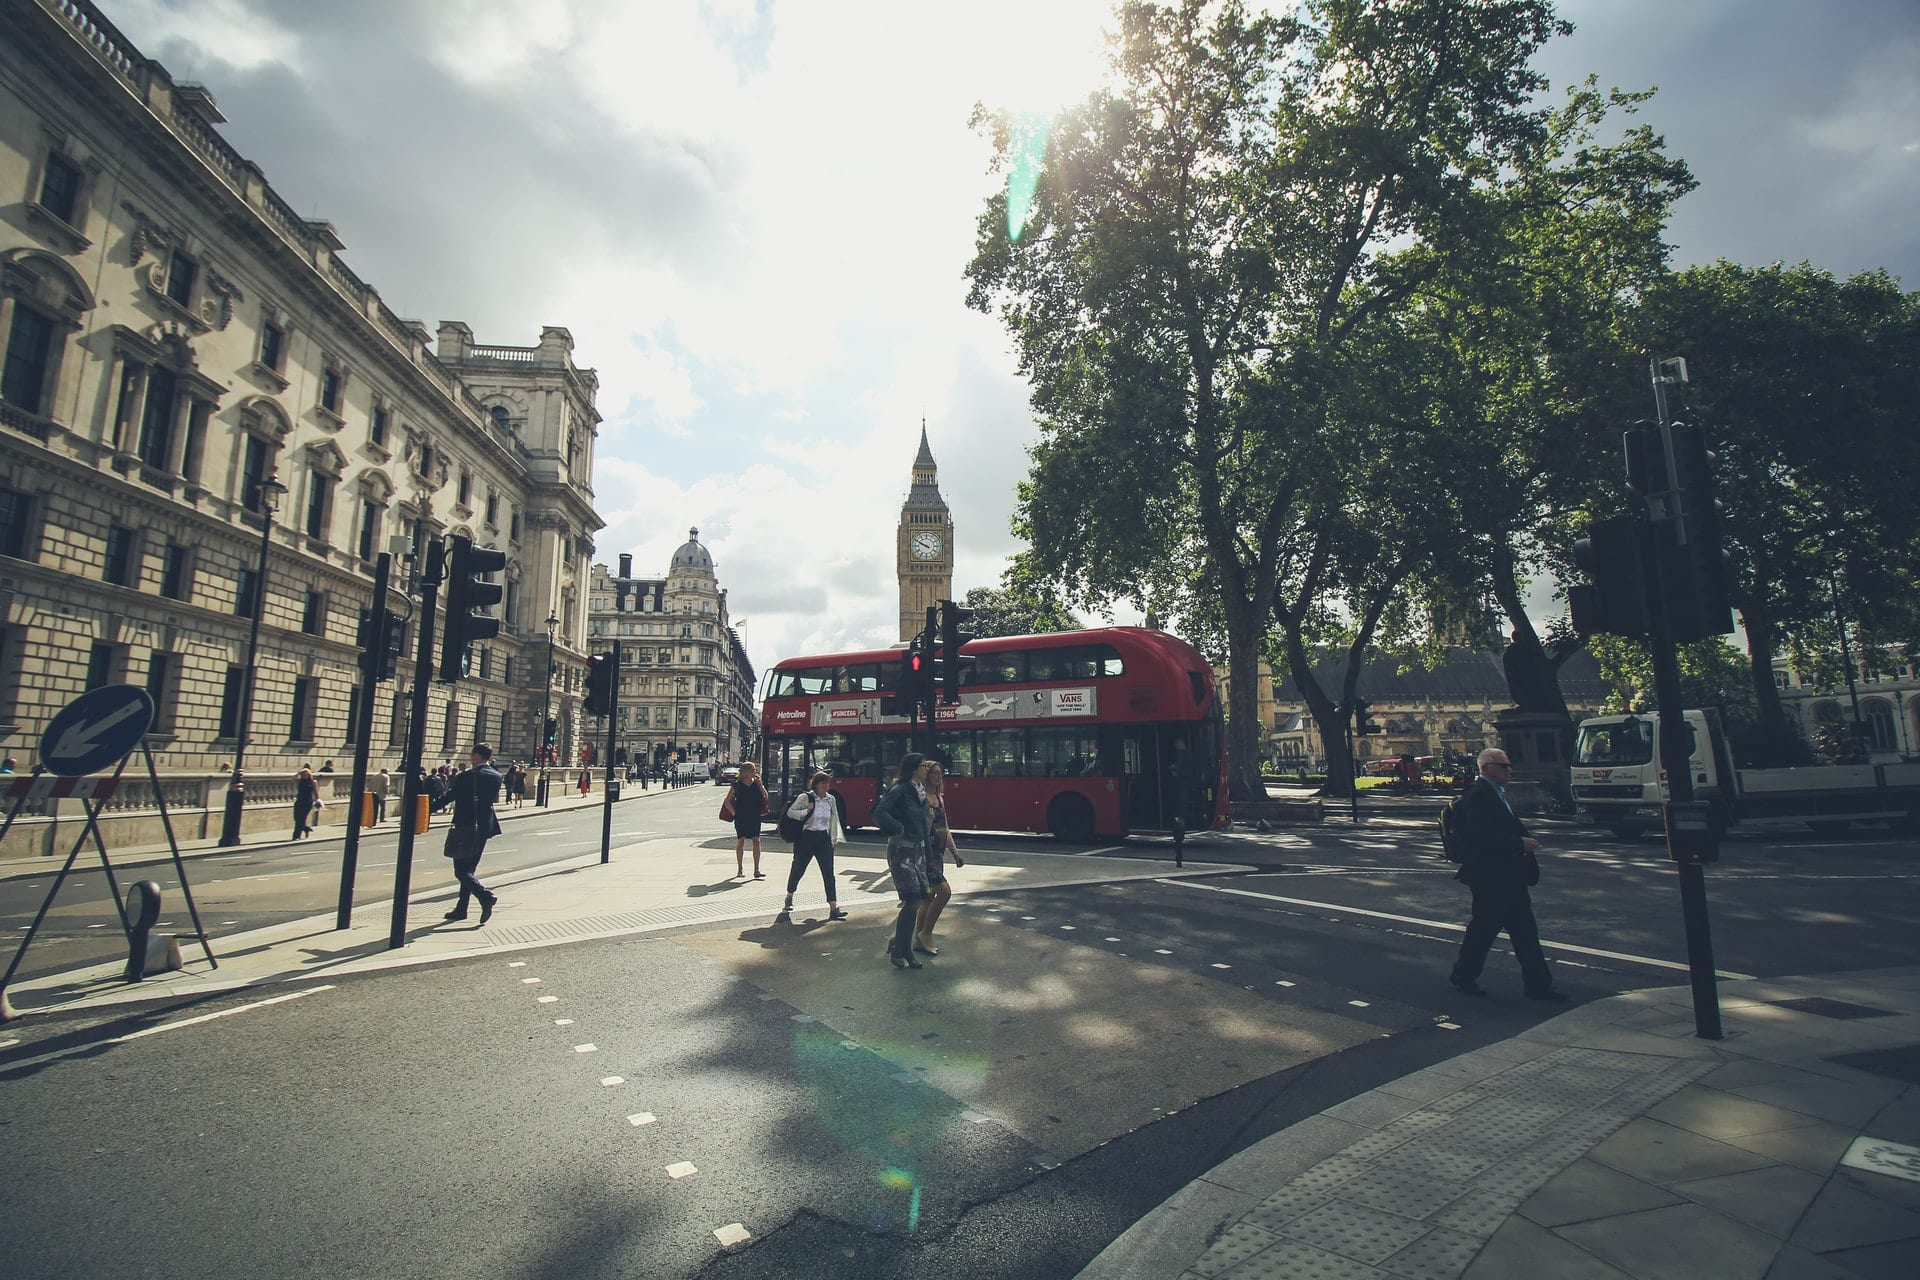 London street with red bus